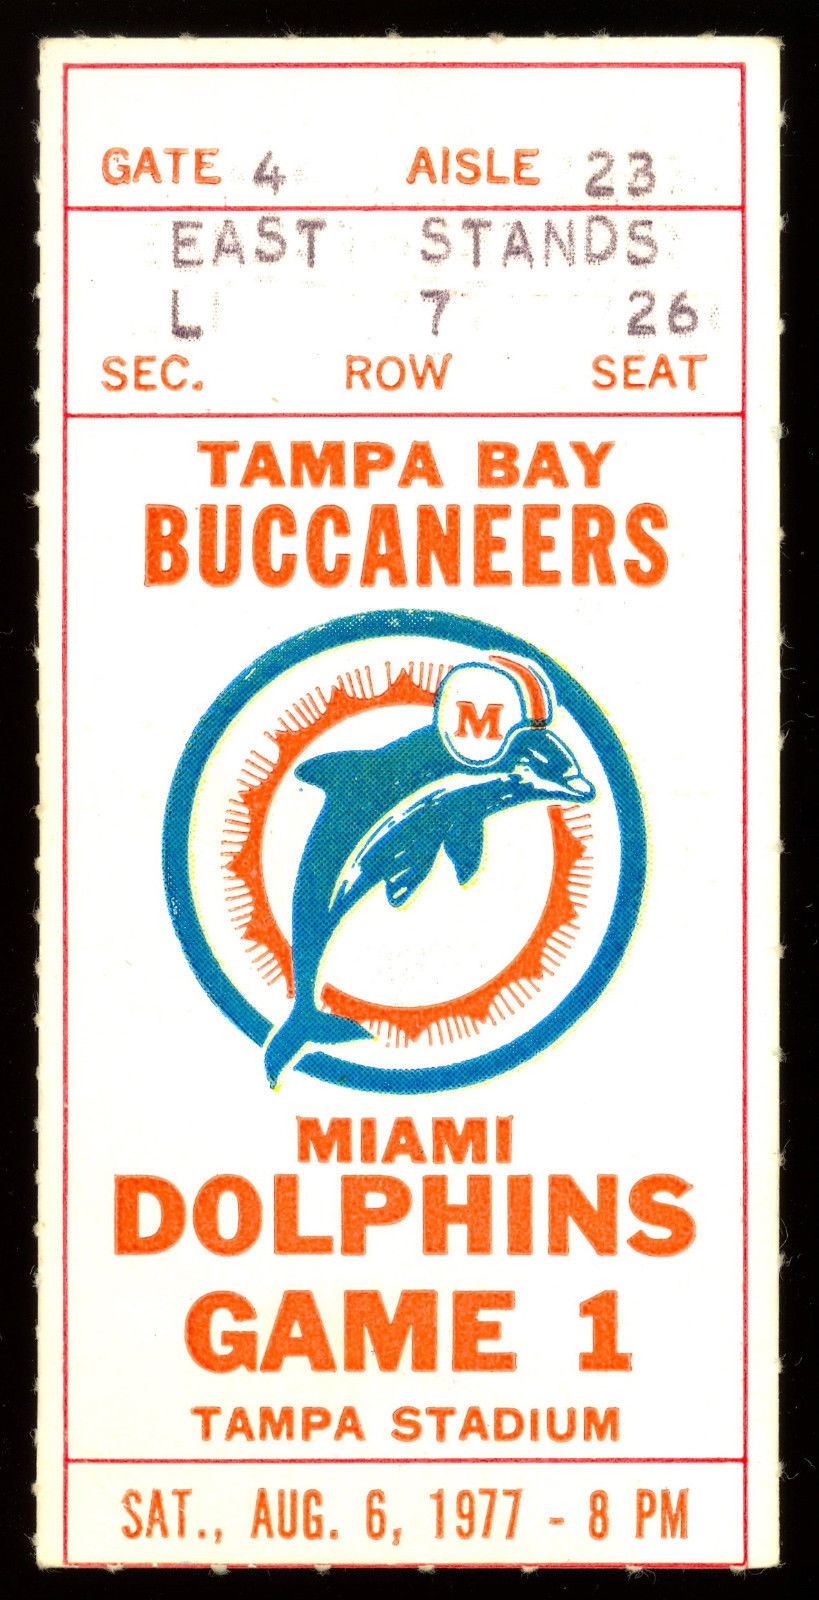 1977 NFL Dolphins at Buccaneers ticket stub